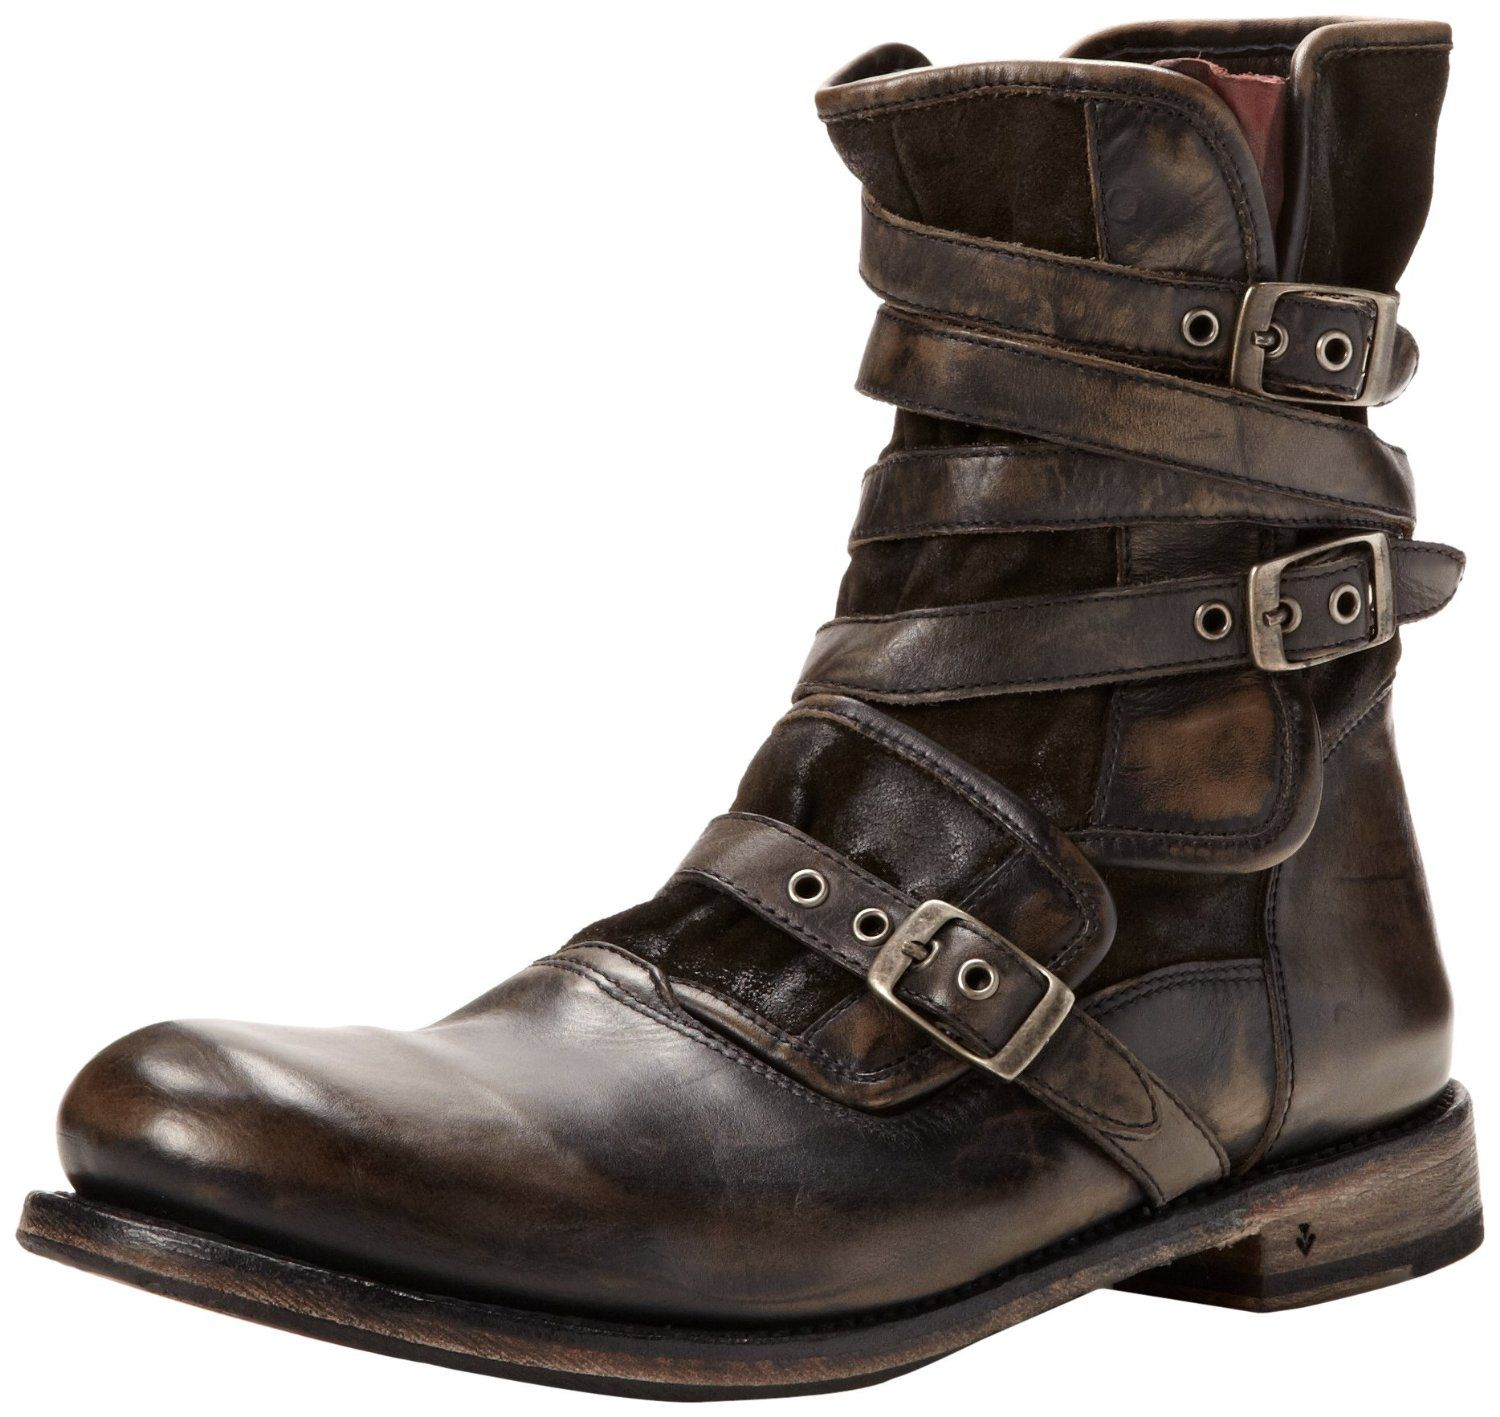 Boots for Men | Men's Gokey, Patagonia and Clarks Boots ...